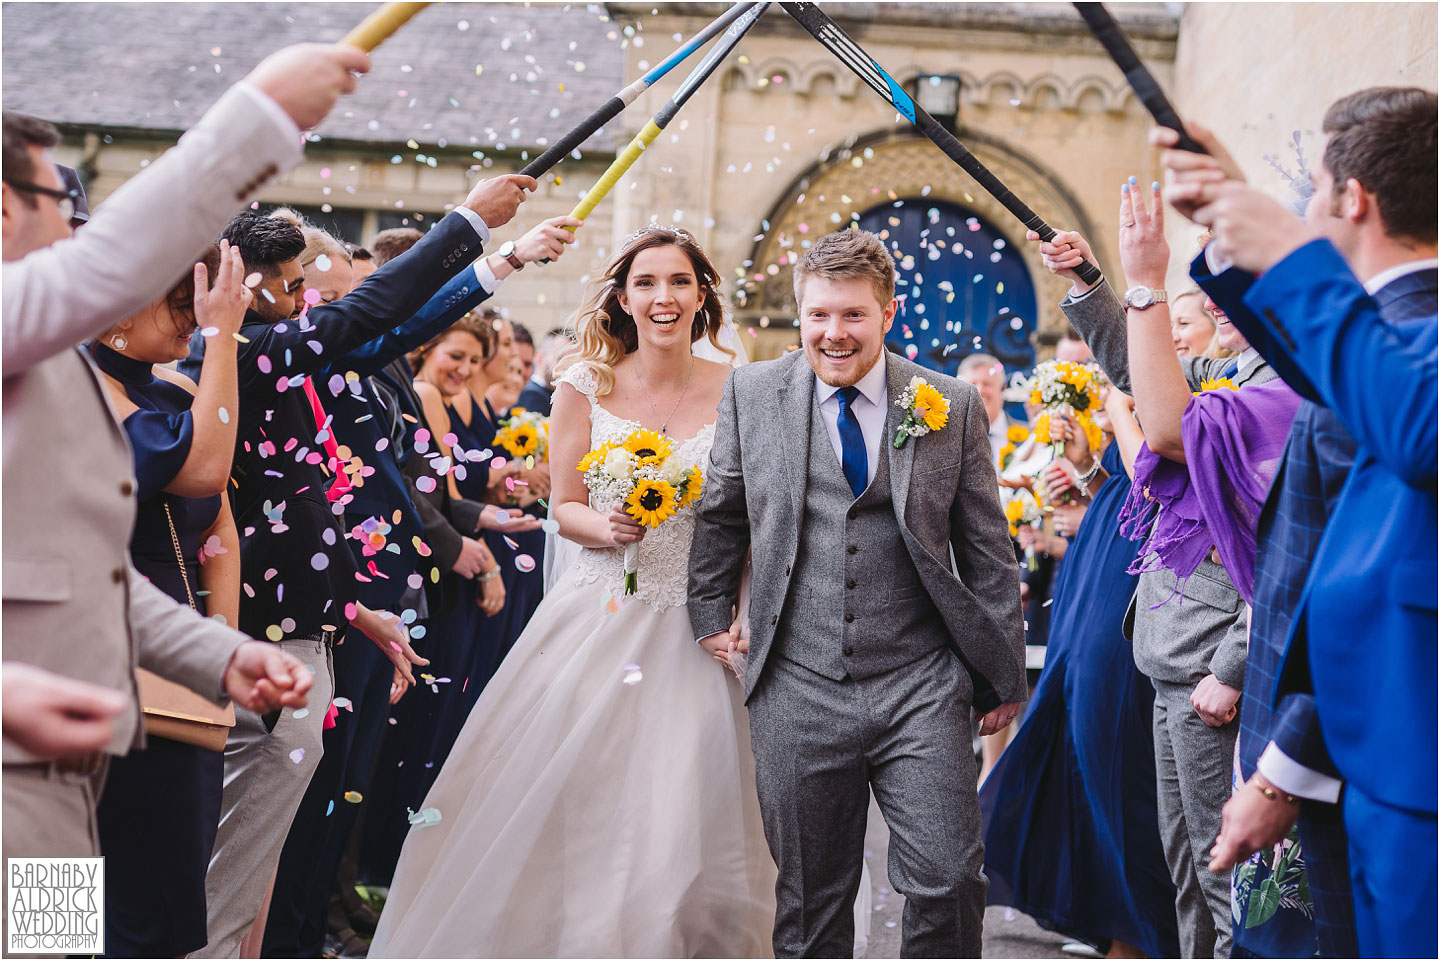 Confetti photograph at Scarthingwell Catholic Church before a Priory Cottages Wedding, Wedding photography at Scarthingwell Catholic Church near Wetherby, Priory Cottages Barn Wedding Venue Photos, Yorkshire Barn Venue Photos